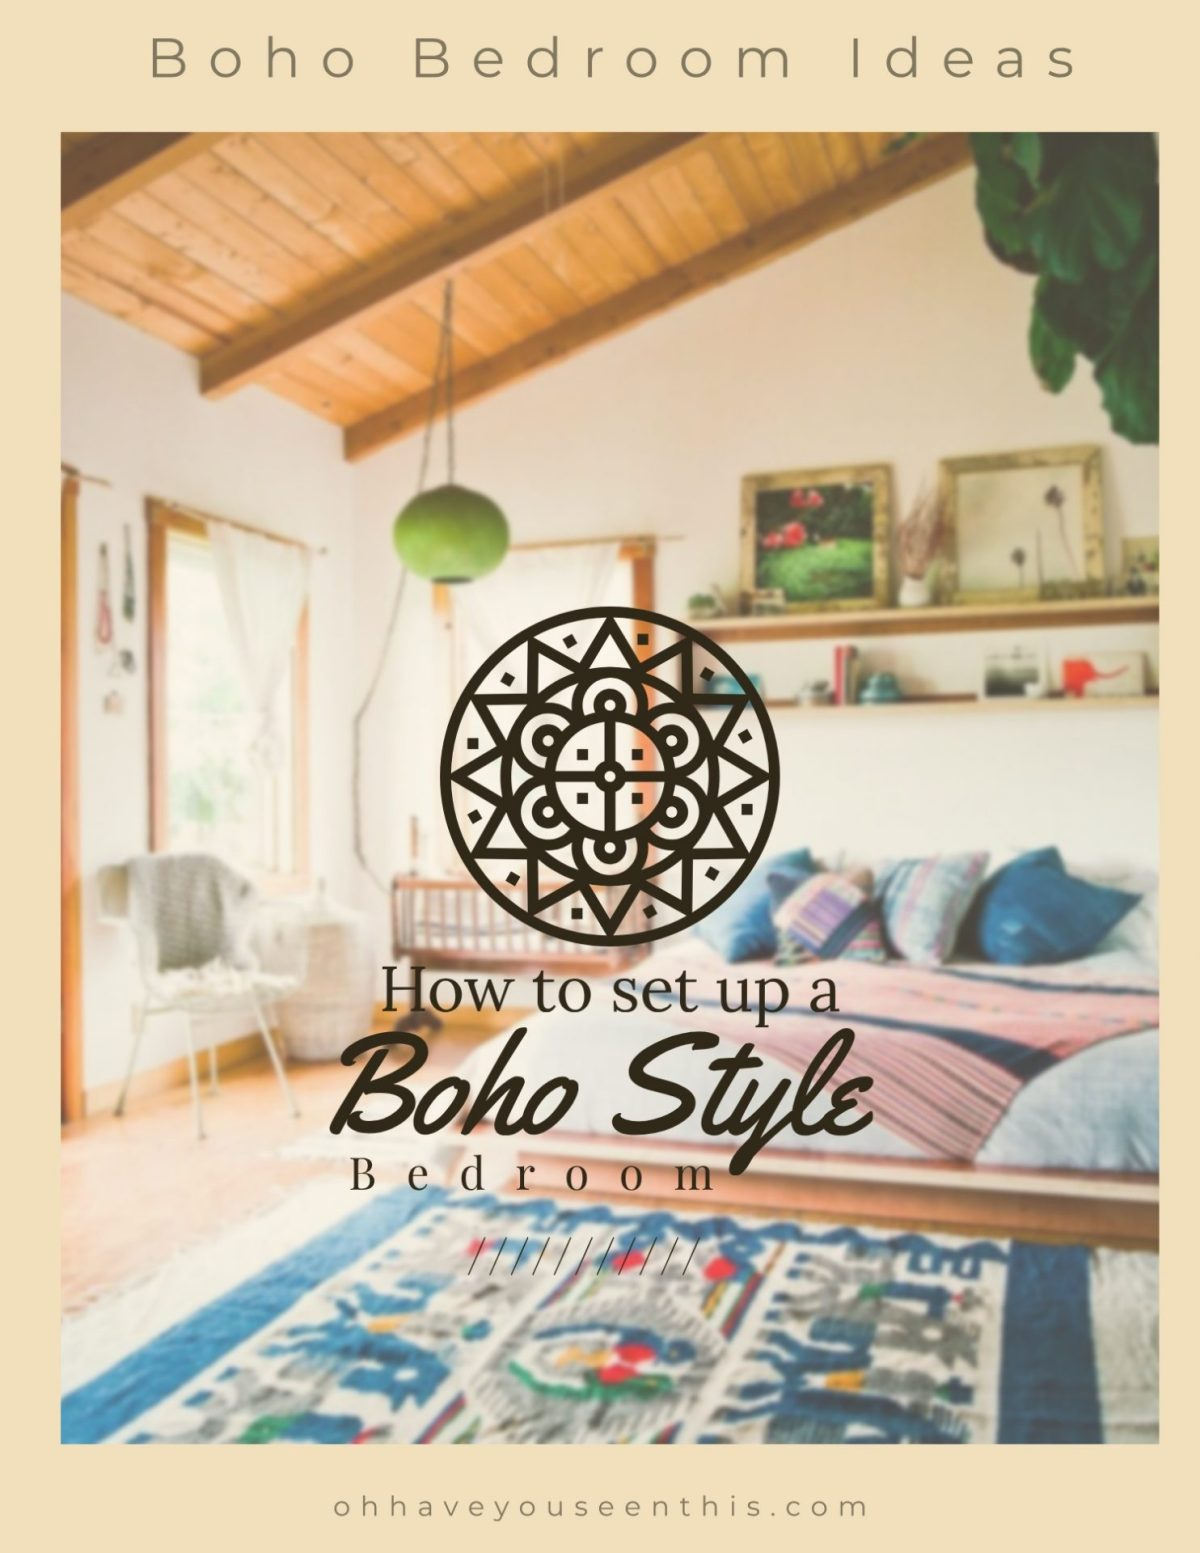 How to set up a boho style bedroom